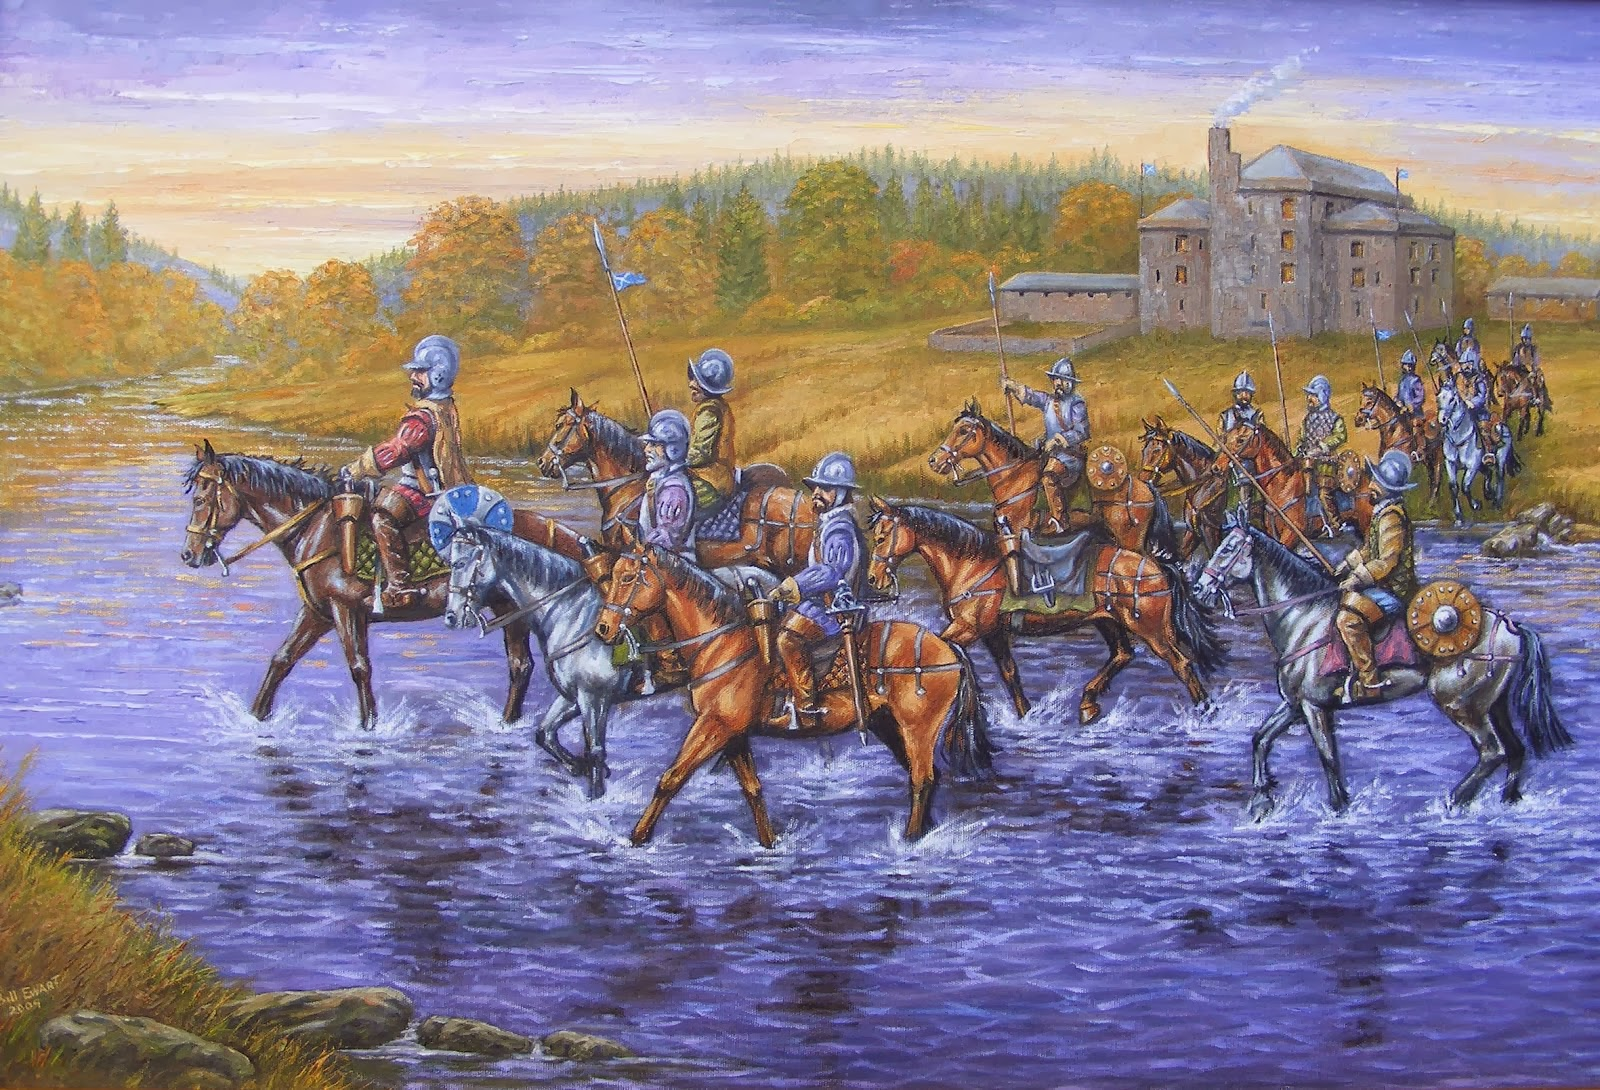 A blog about the history of the Border Reivers from the 13th to the 17th centuries.